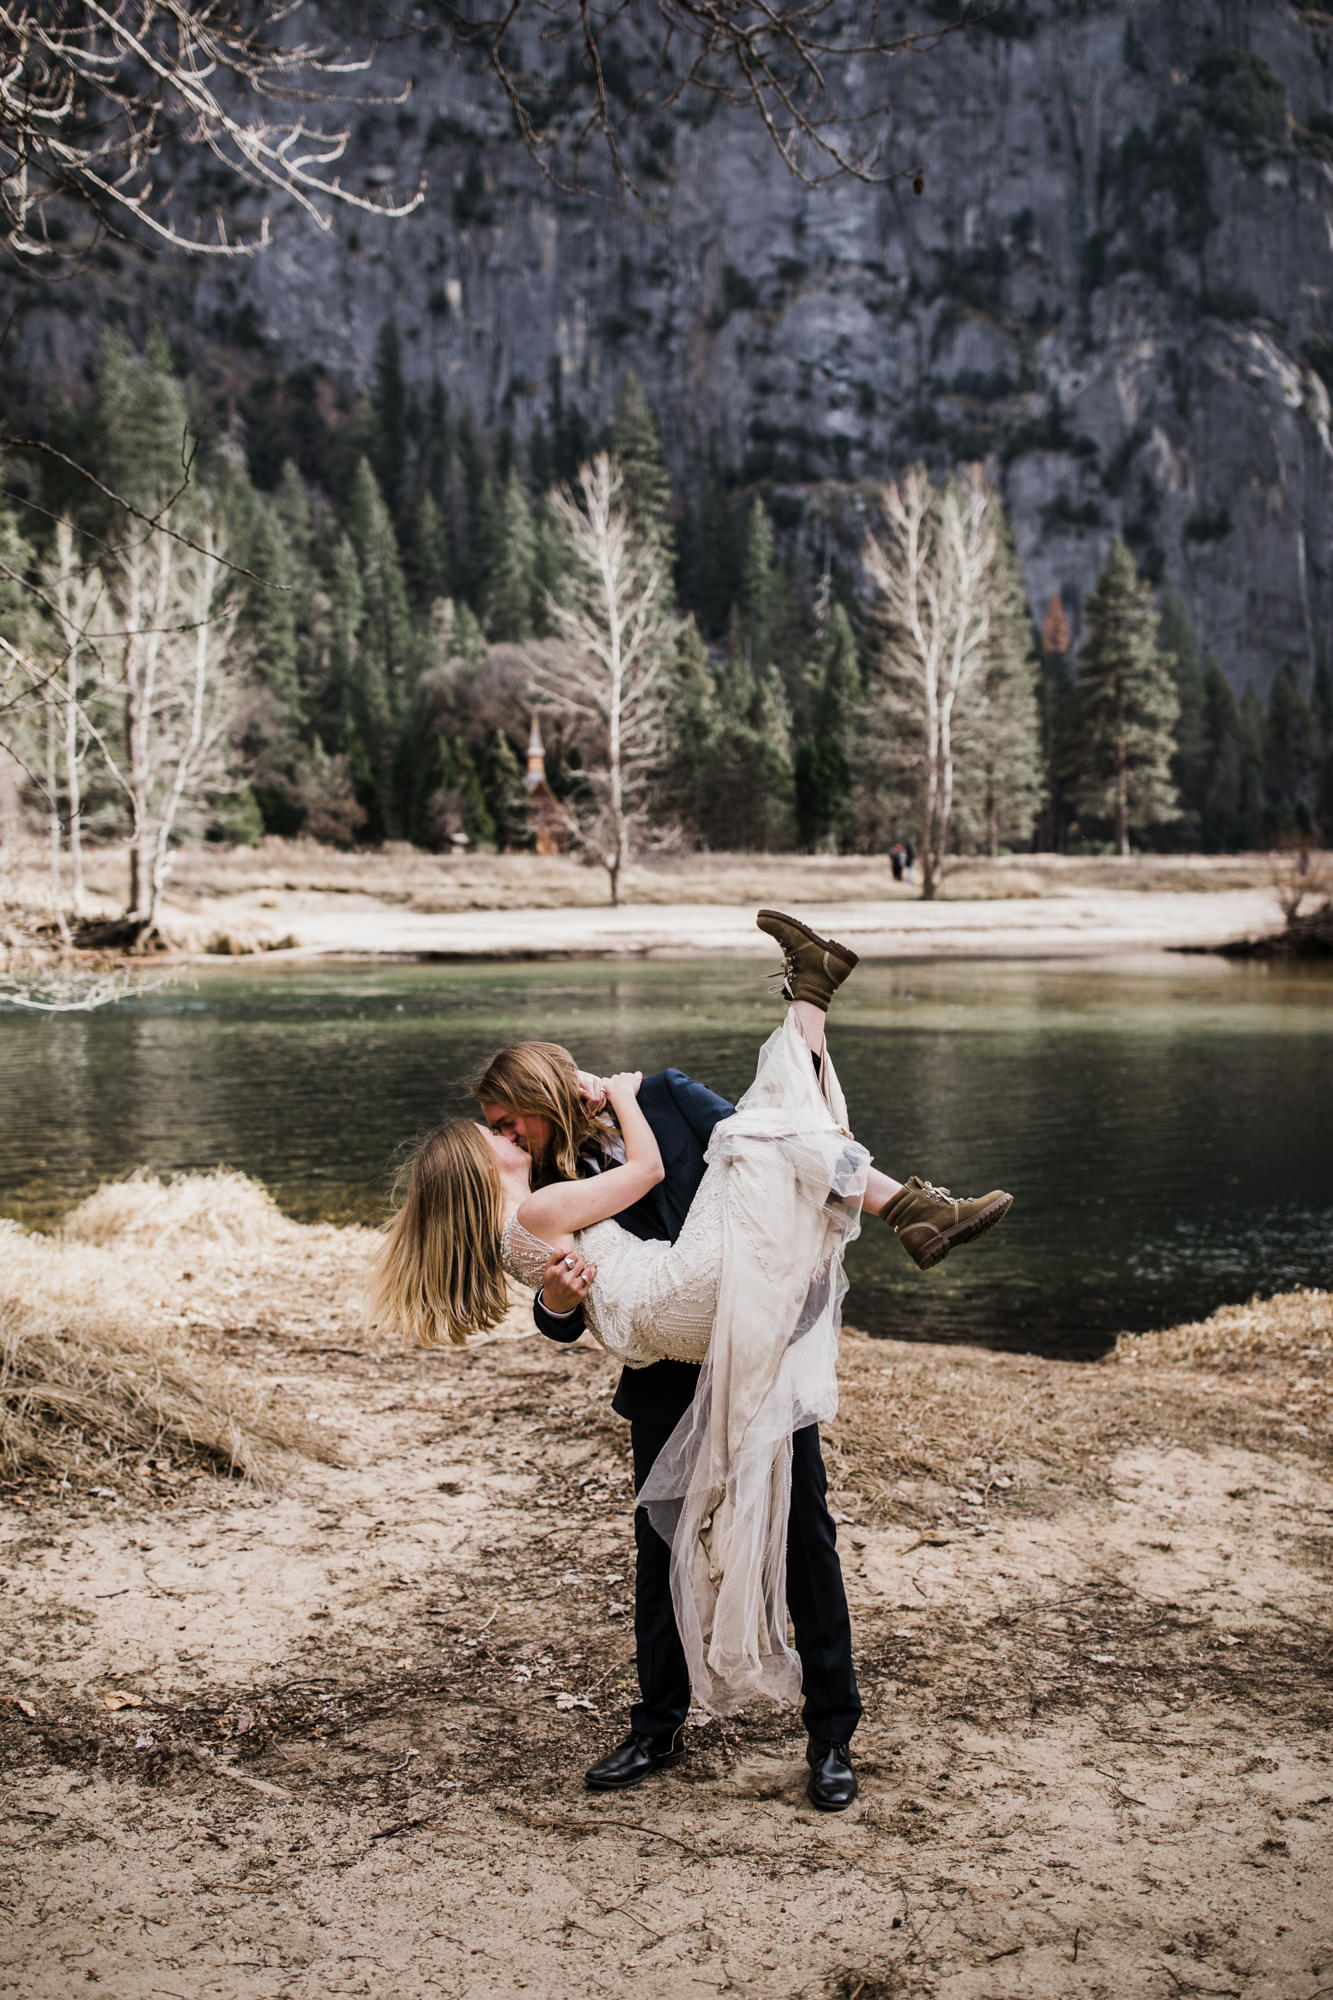 adventurous elopement portraits in yosemite national park | destination elopement photographers | the hearnes adventure photography | www.thehearnes.com